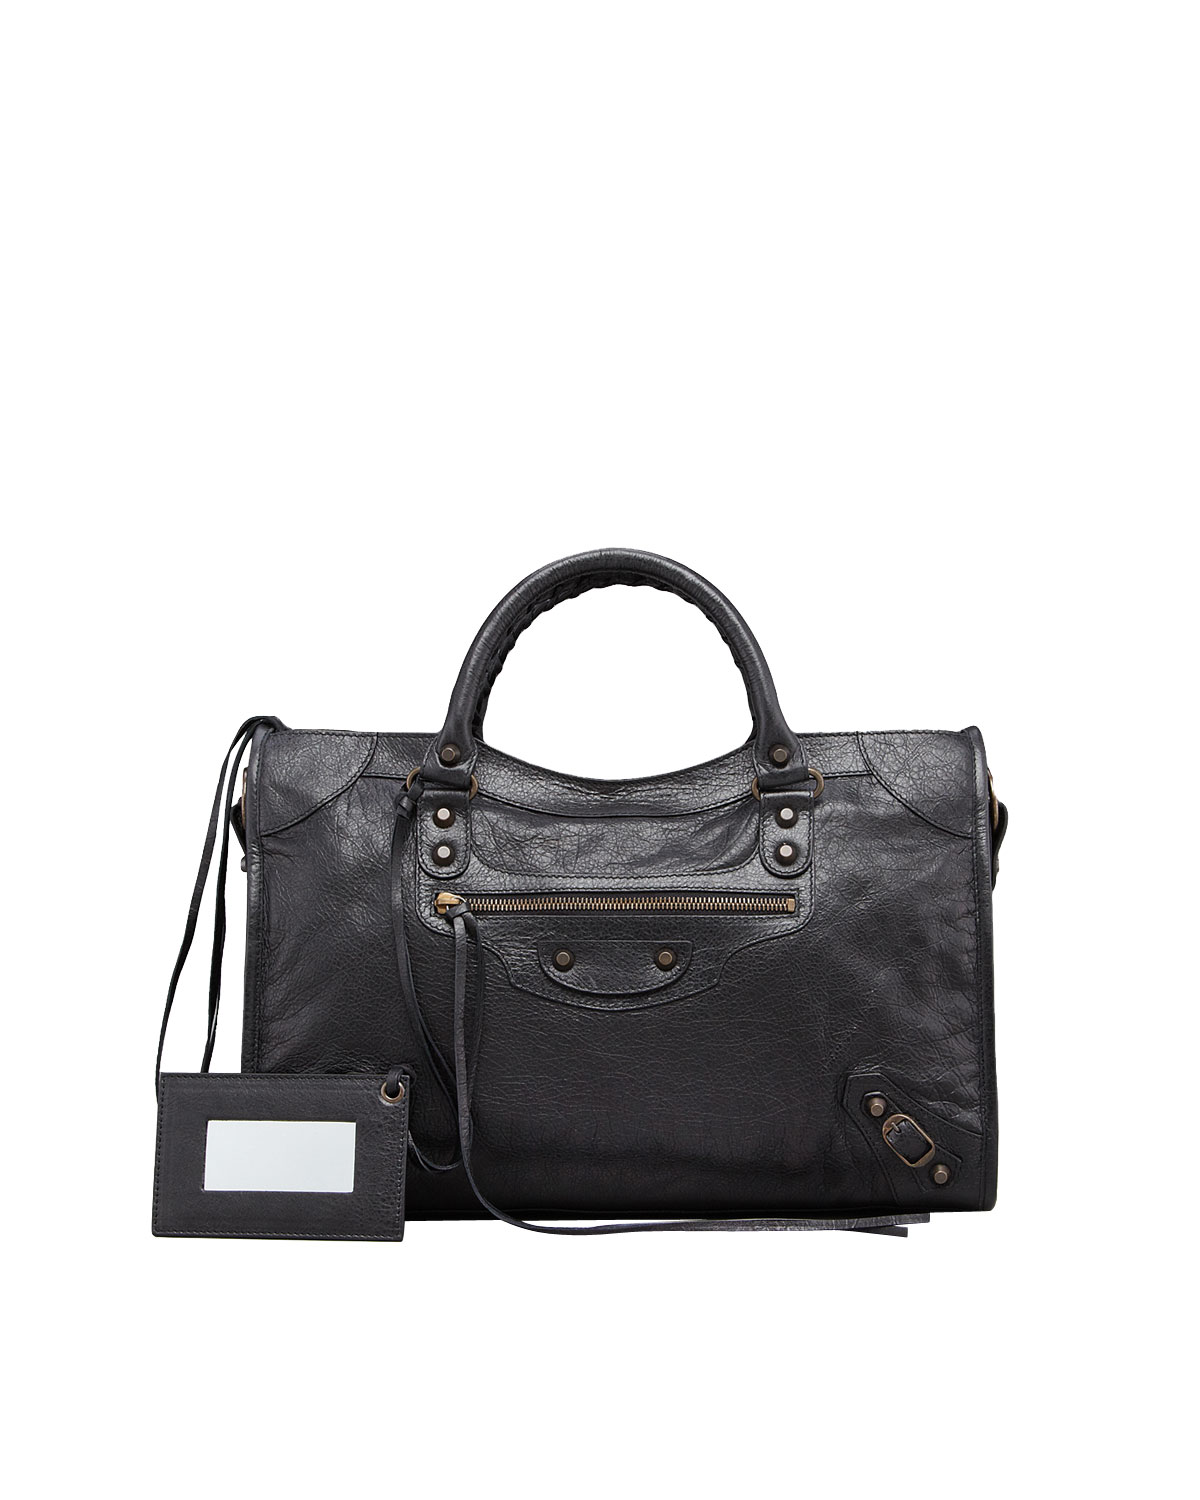 a4c8519bc6 Balenciaga Classic City Bag